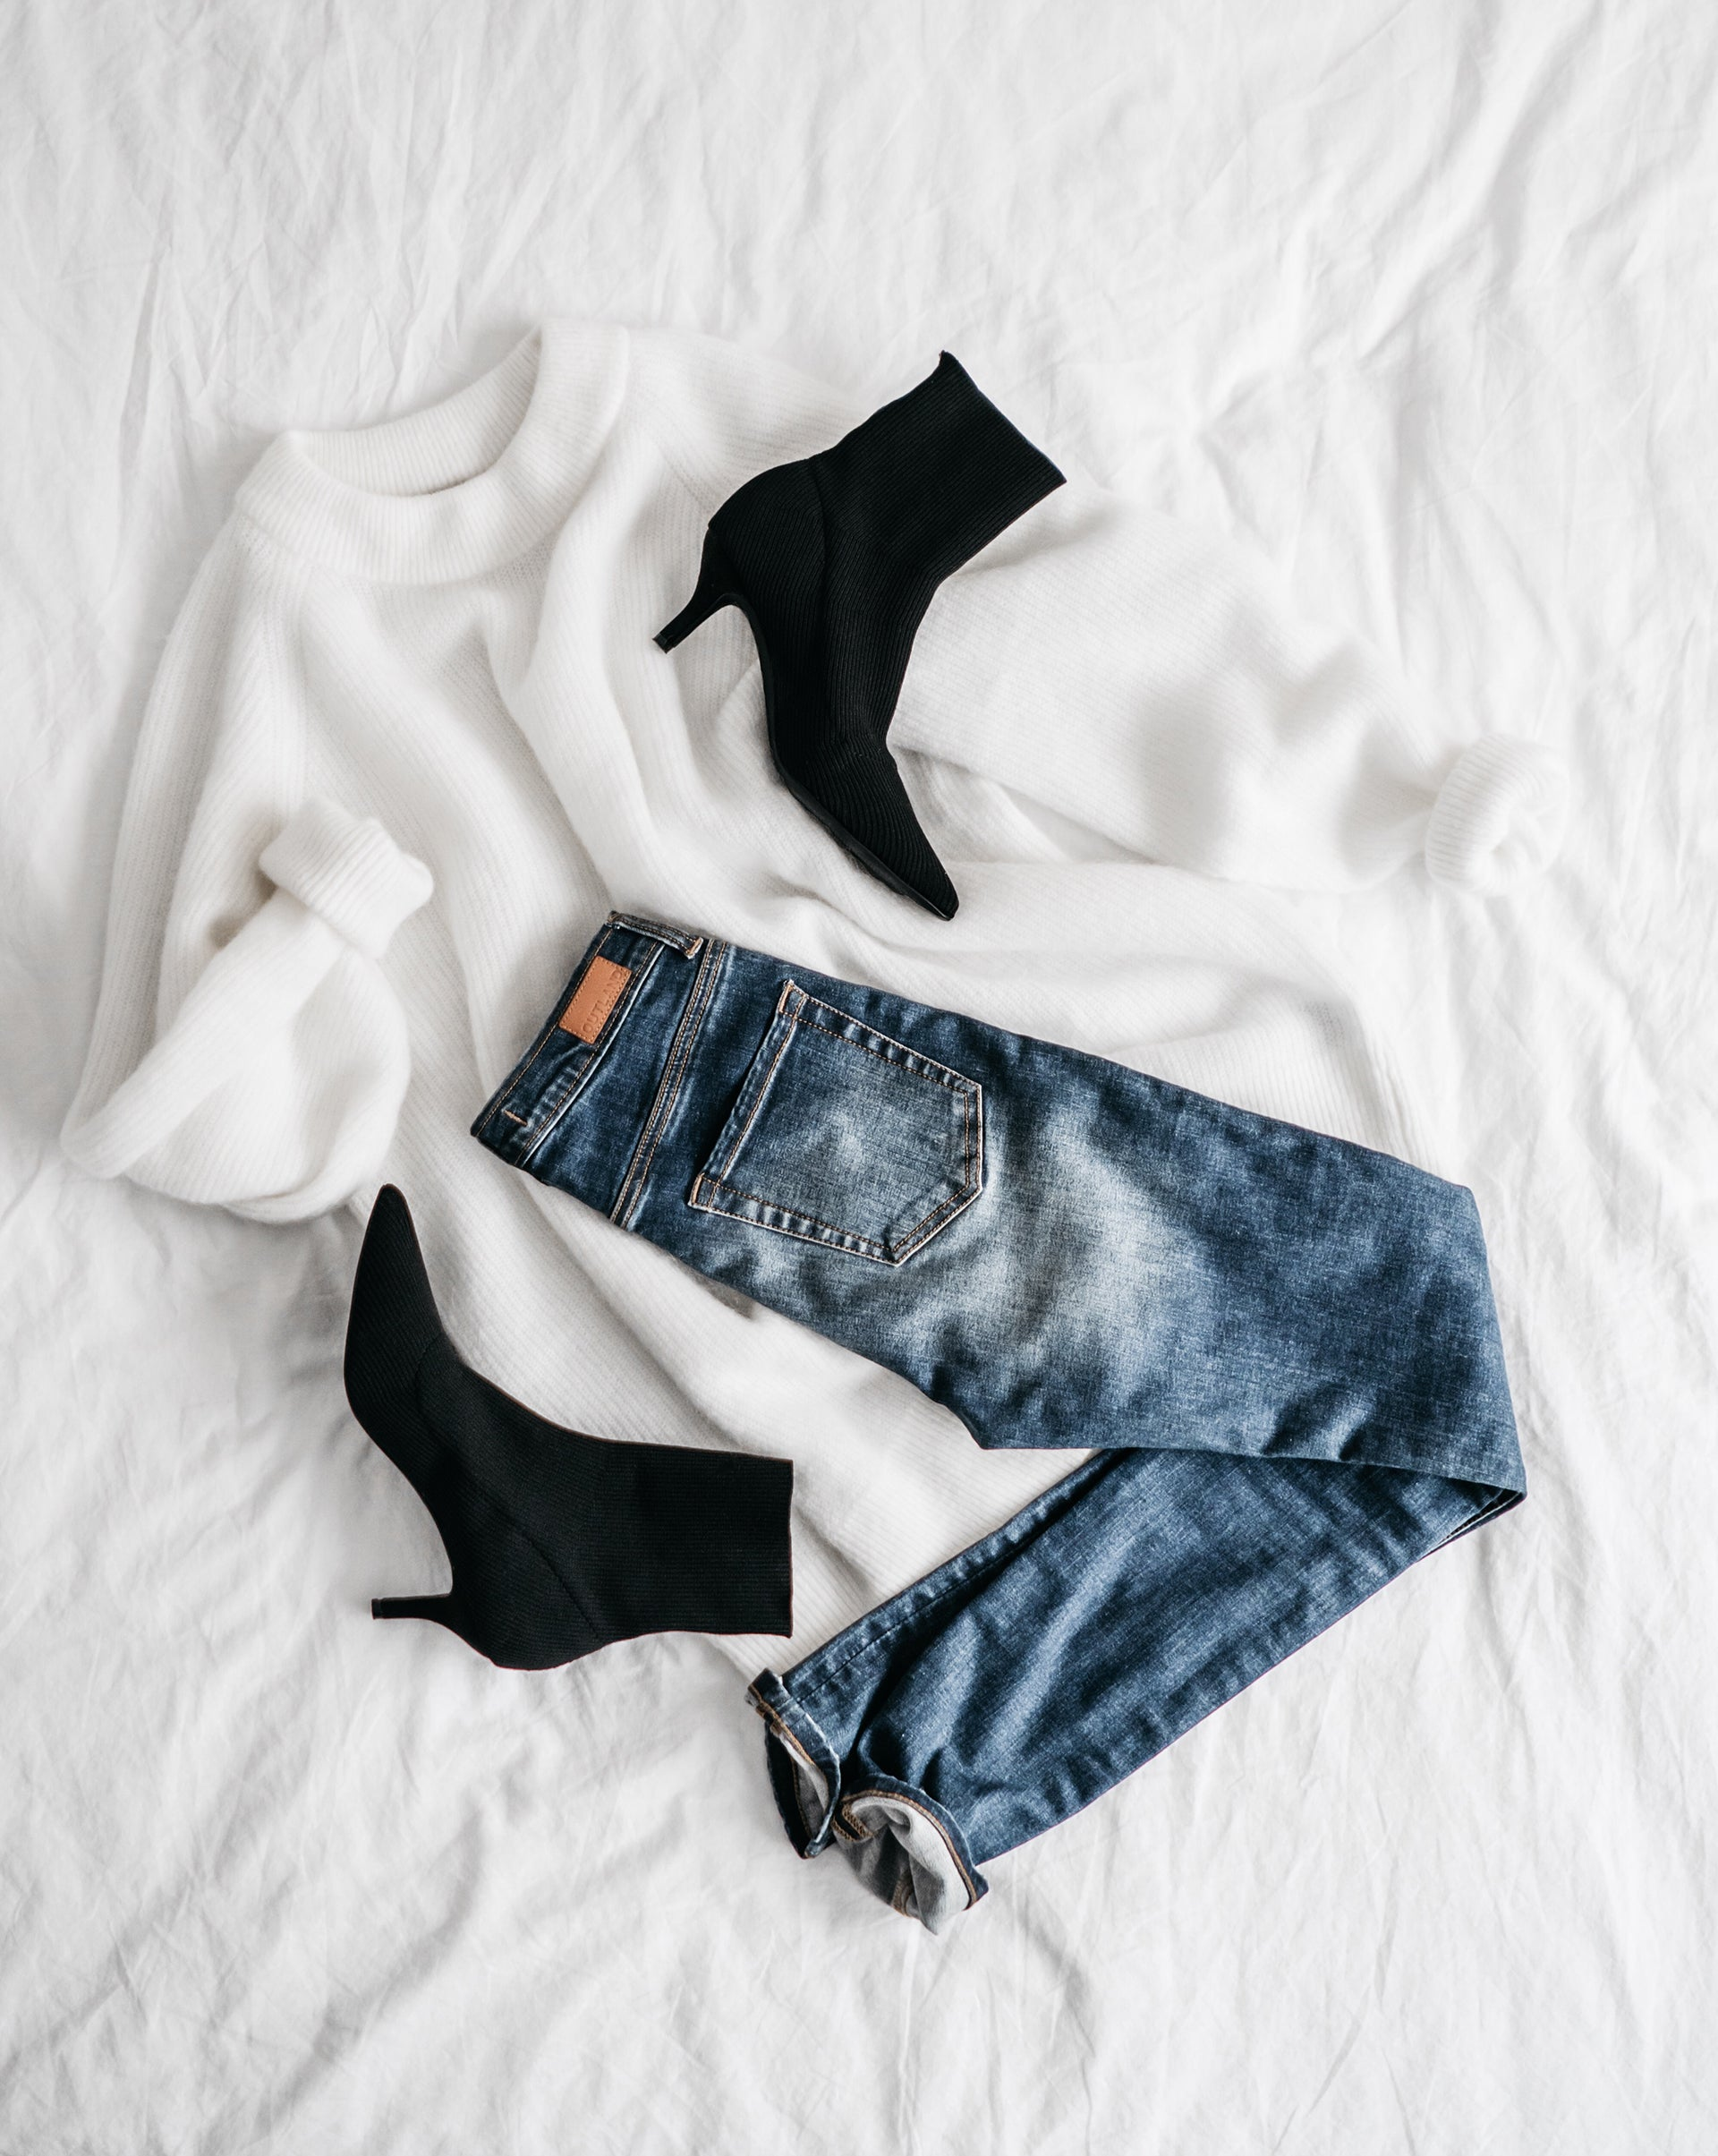 flatlay of jeans and sweaters